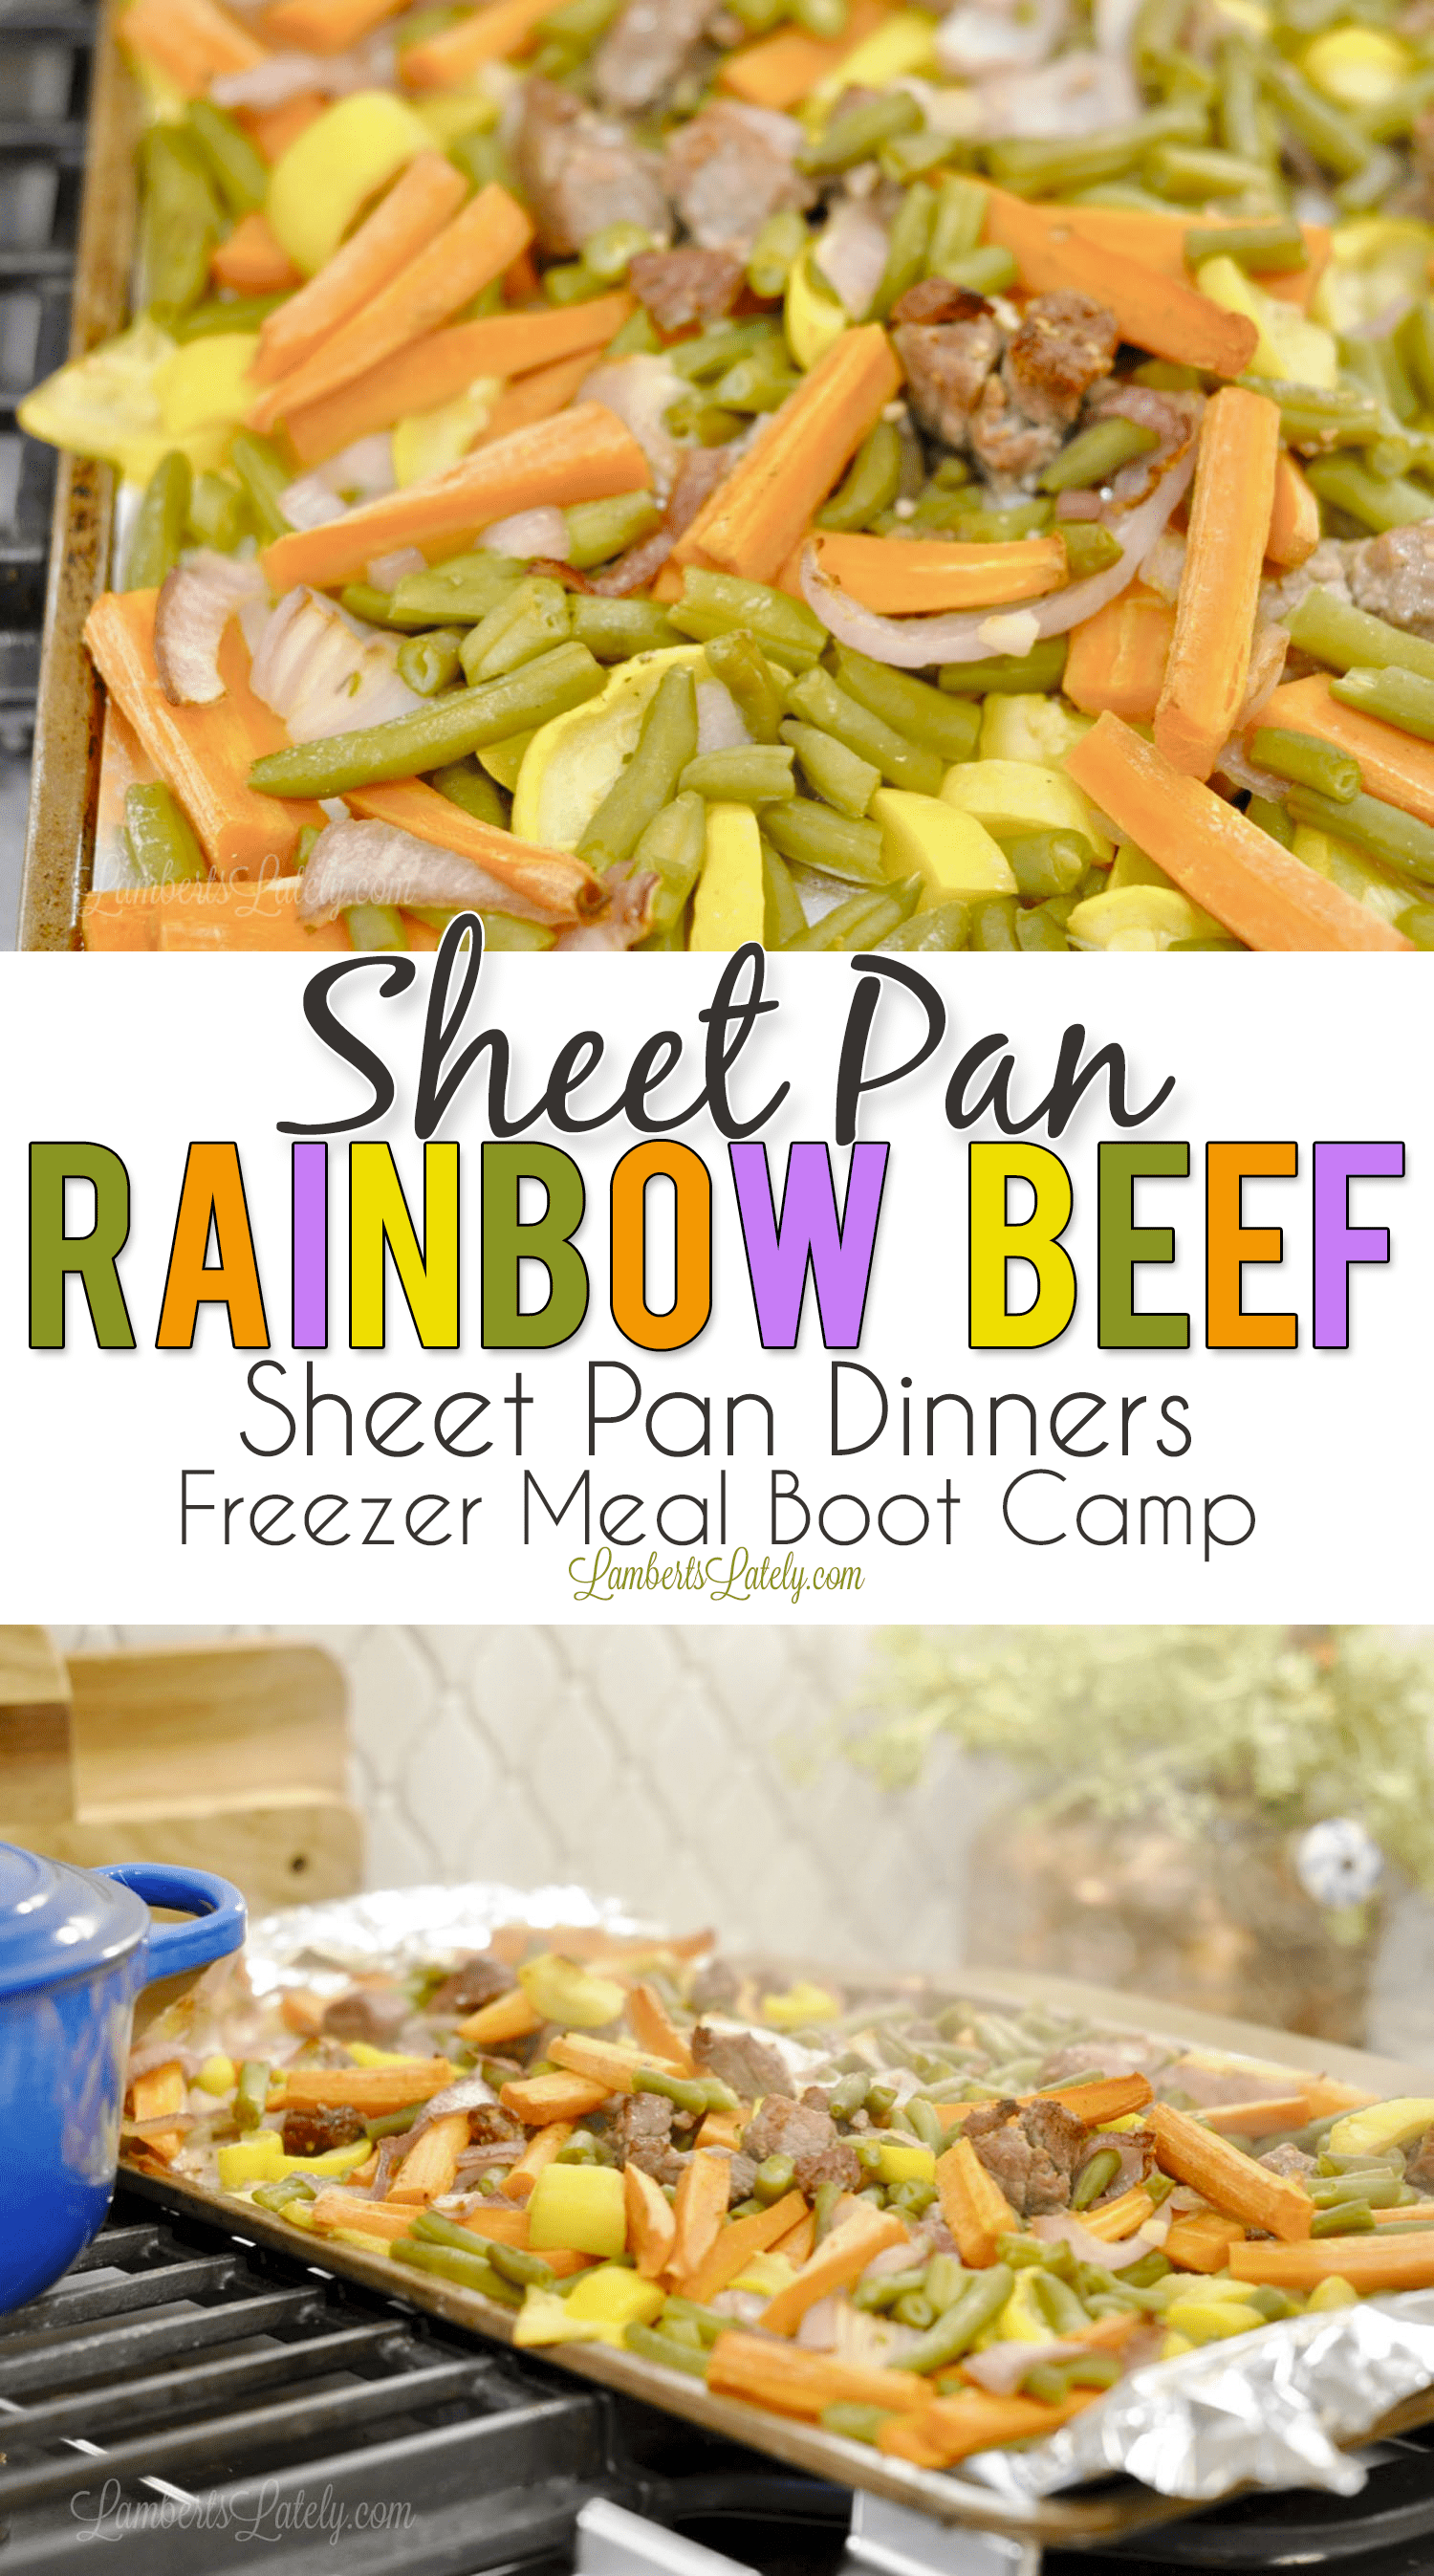 Sheet PanRainbow Beef combines savory pieces of steak with carrots, green beans, squash, and red onions to make a beautiful and colorful dinner! Gives a great serving of vegetables and has a rich ranch flavor. Sheet pan dinners are such easy meals - they make for easy weeknight freezer meals too!